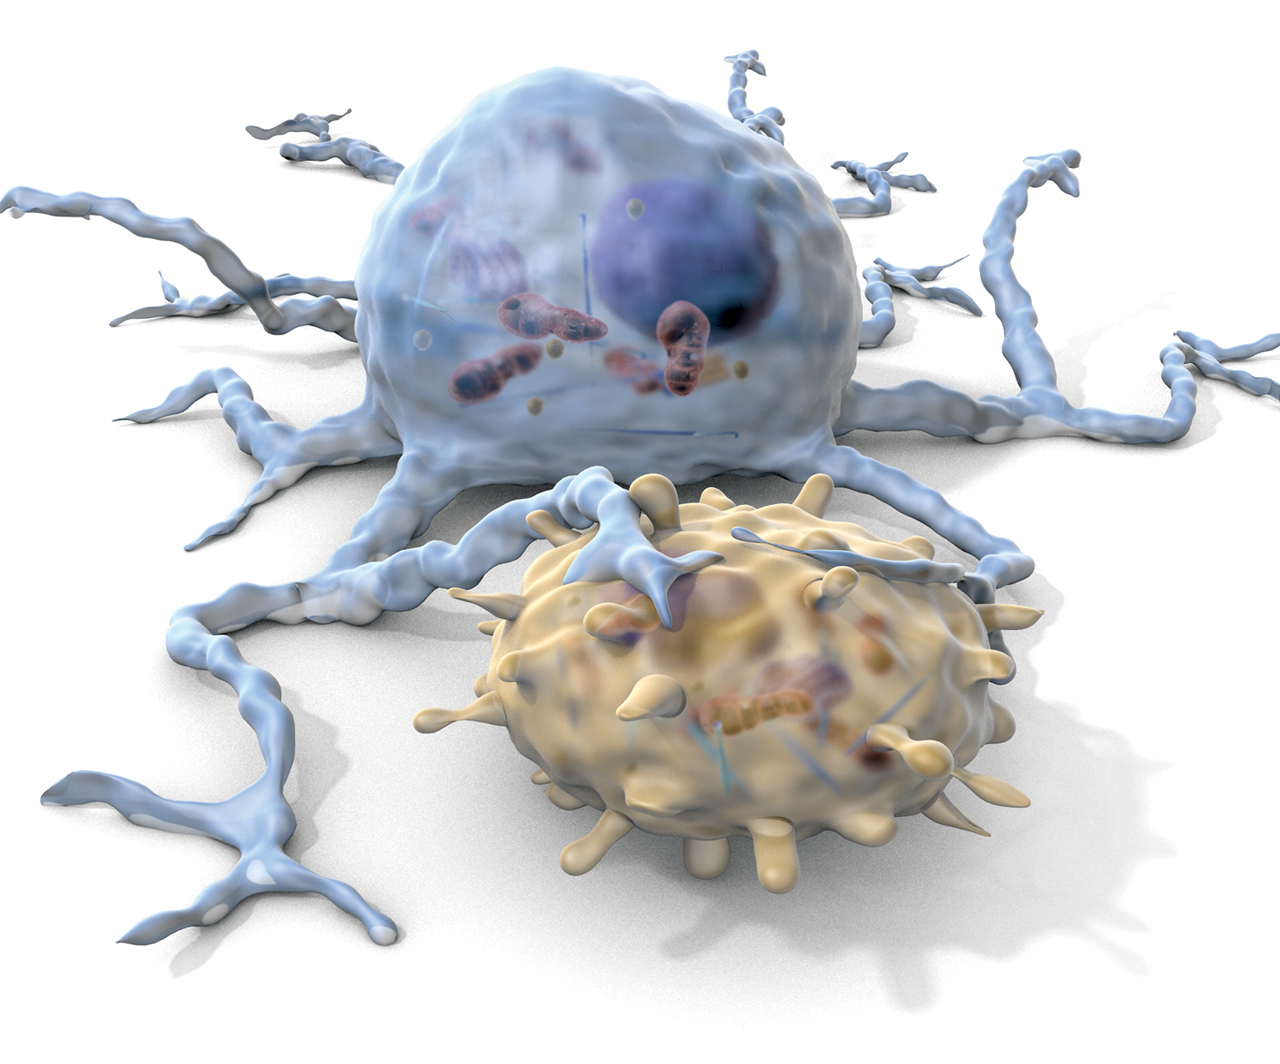 A dendritic cell (blue) engages a T cell (yellow)